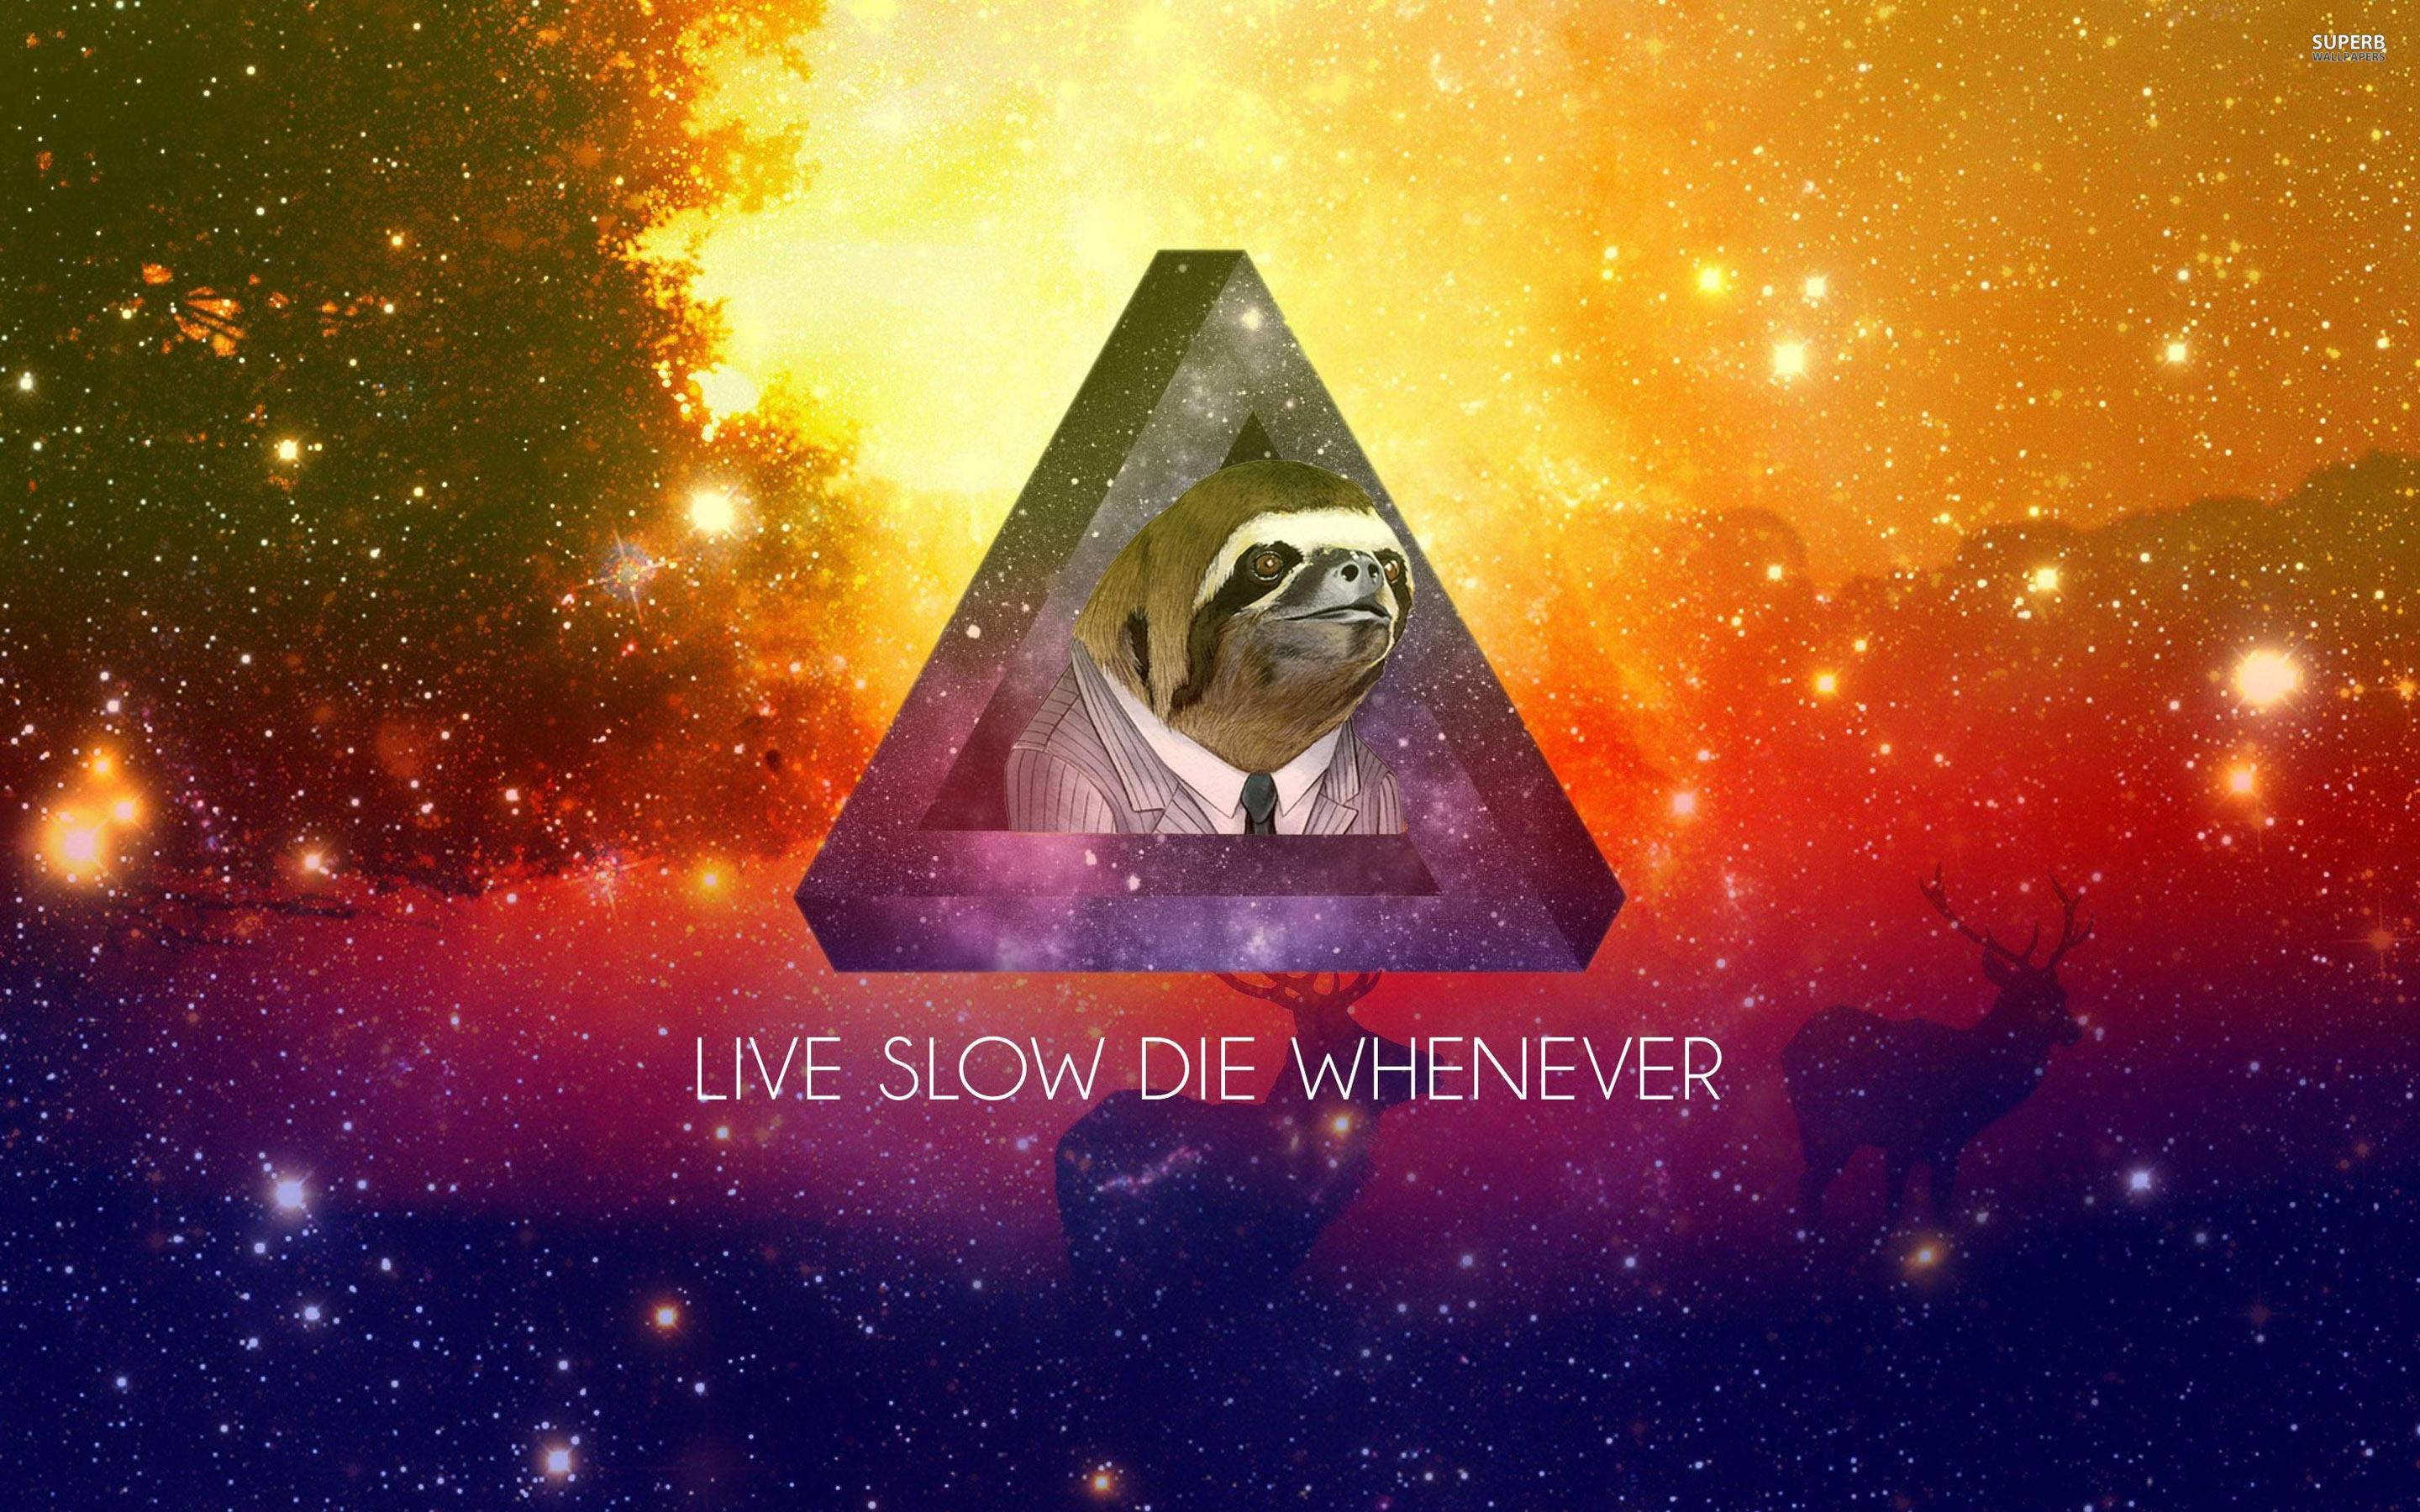 Space sloth wallpaper 76 images - Sloth wallpaper phone ...